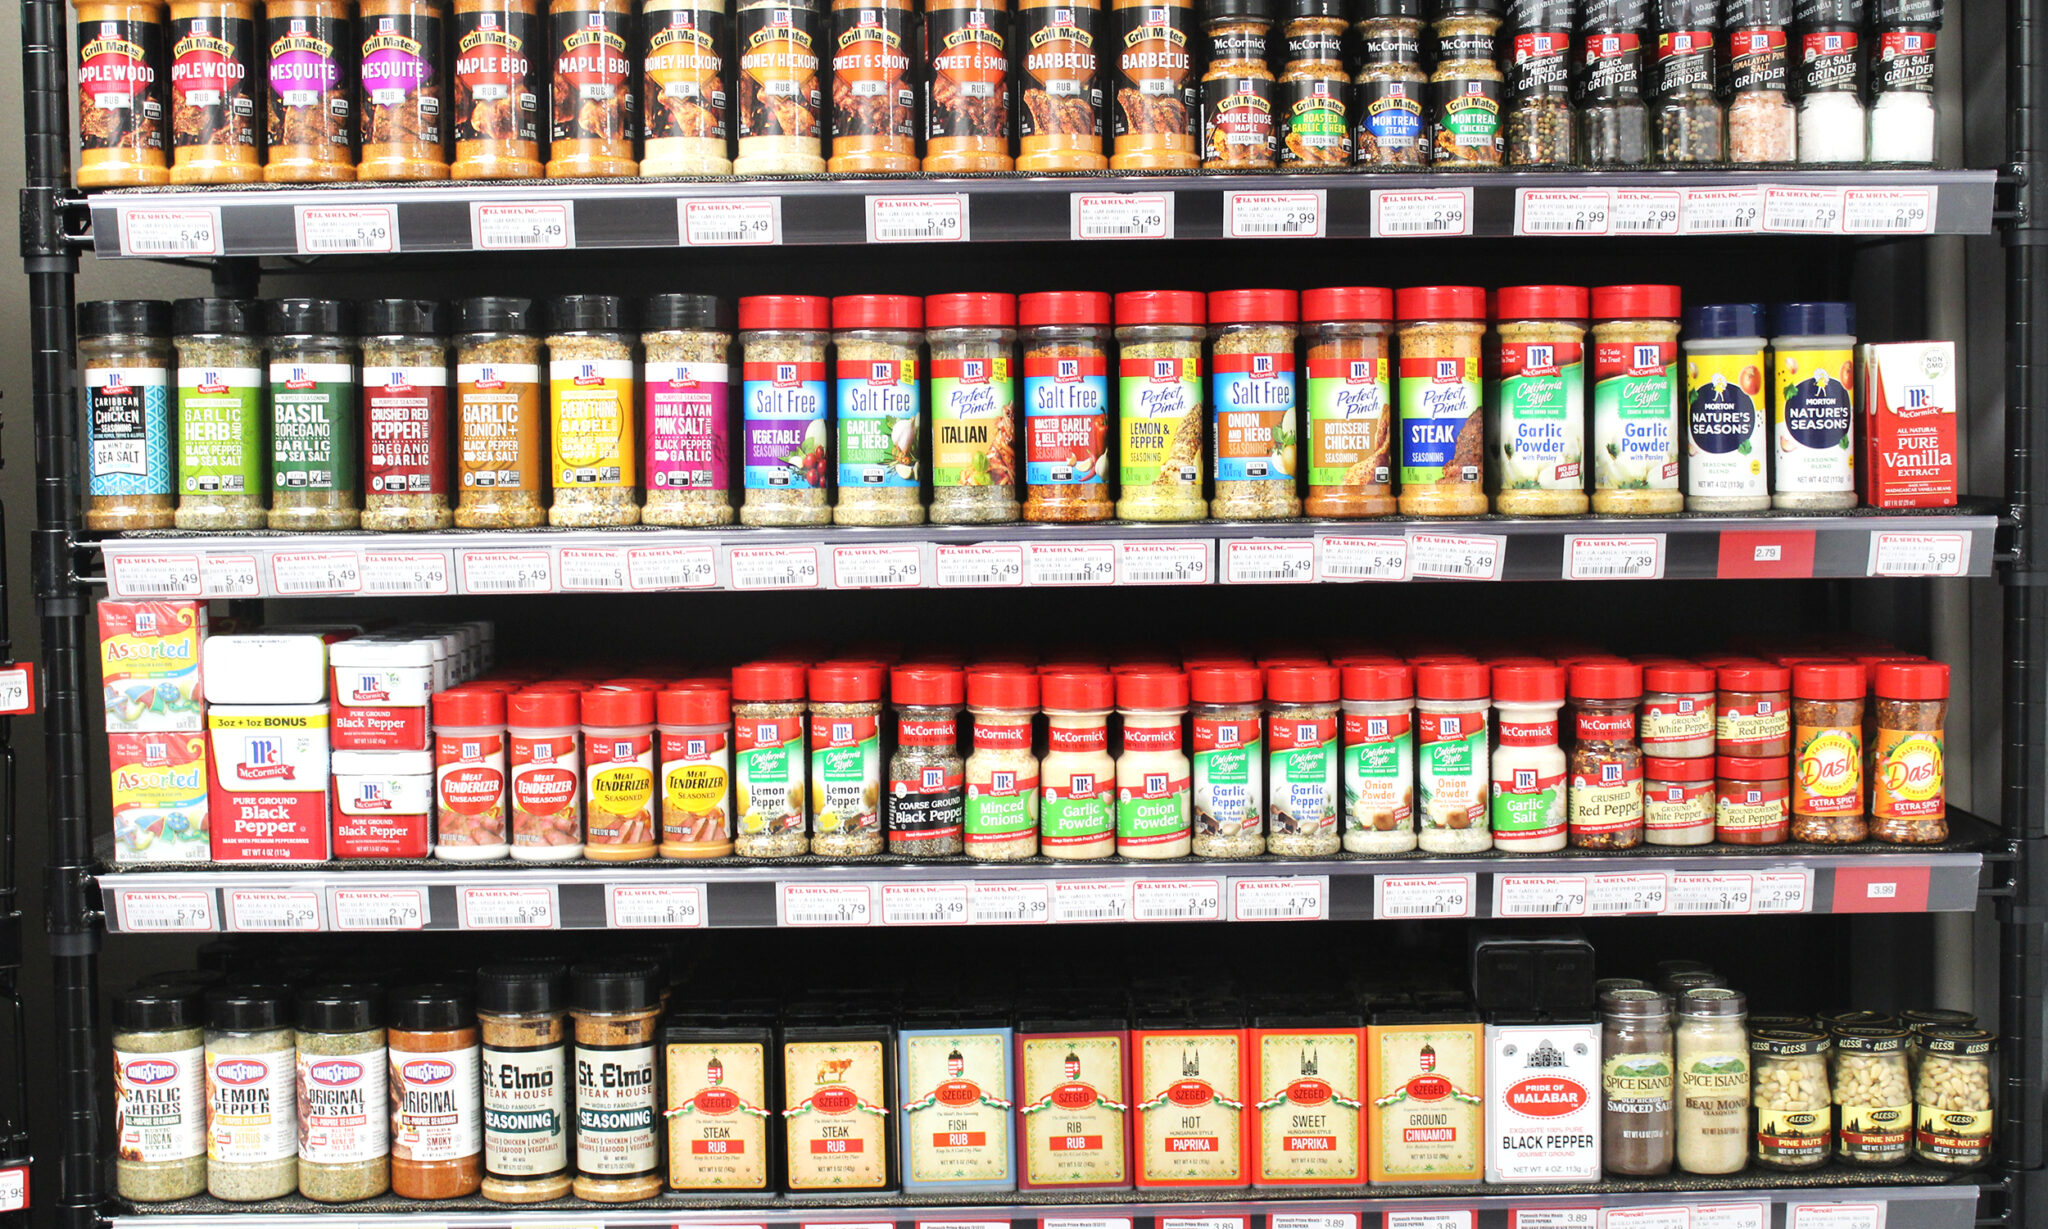 spice rack inside of the store